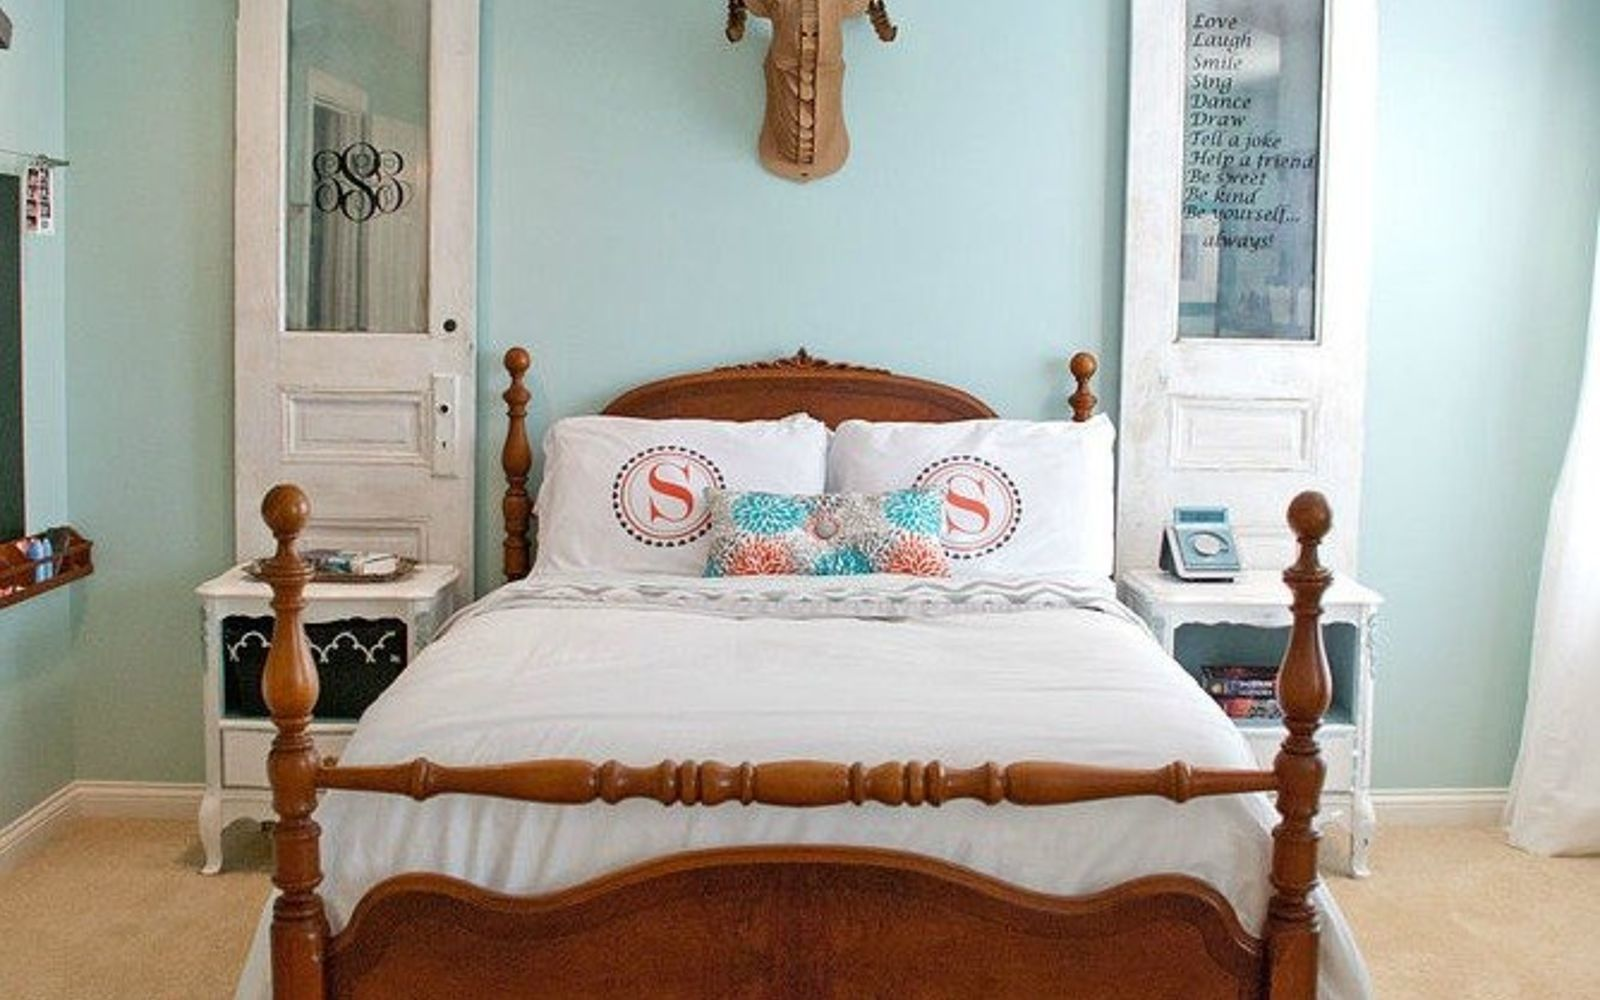 s 10 awesome paint colors to try in 2016, bedroom ideas, home decor, paint colors, Galt Blue Benjamin Moore